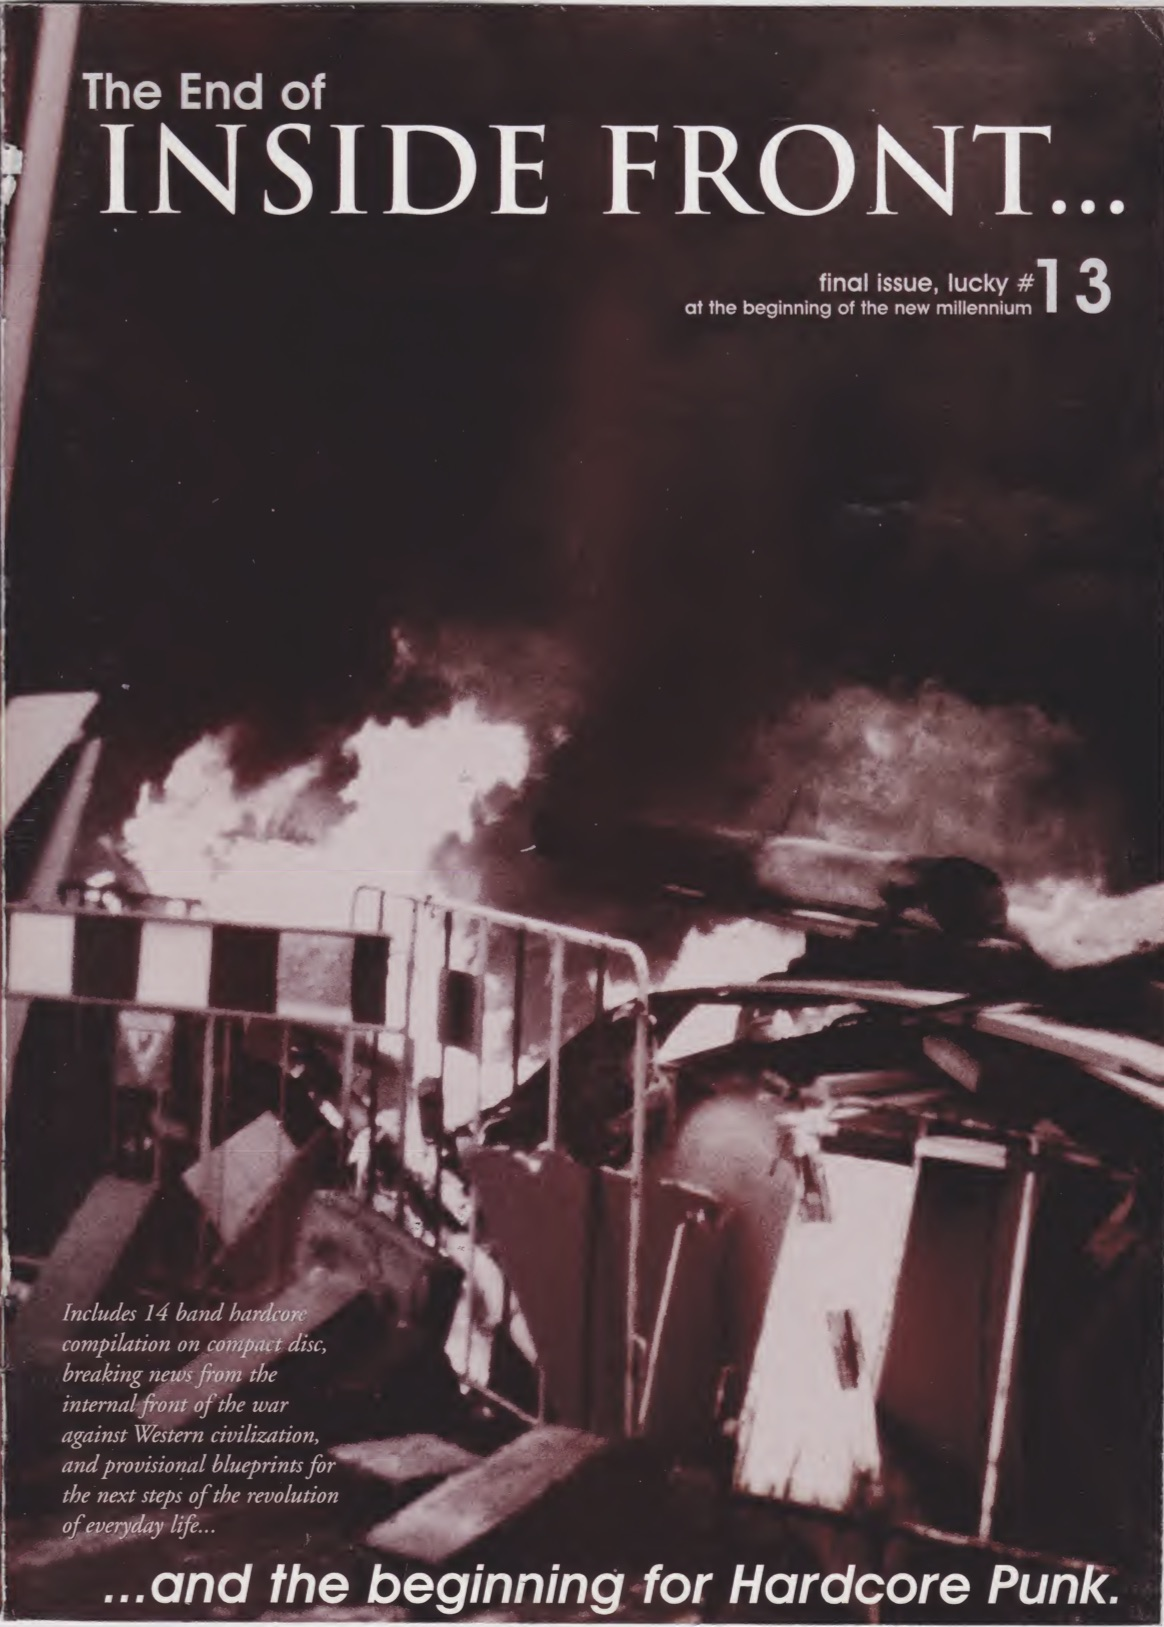 Photo of 'Inside Front #13' front cover